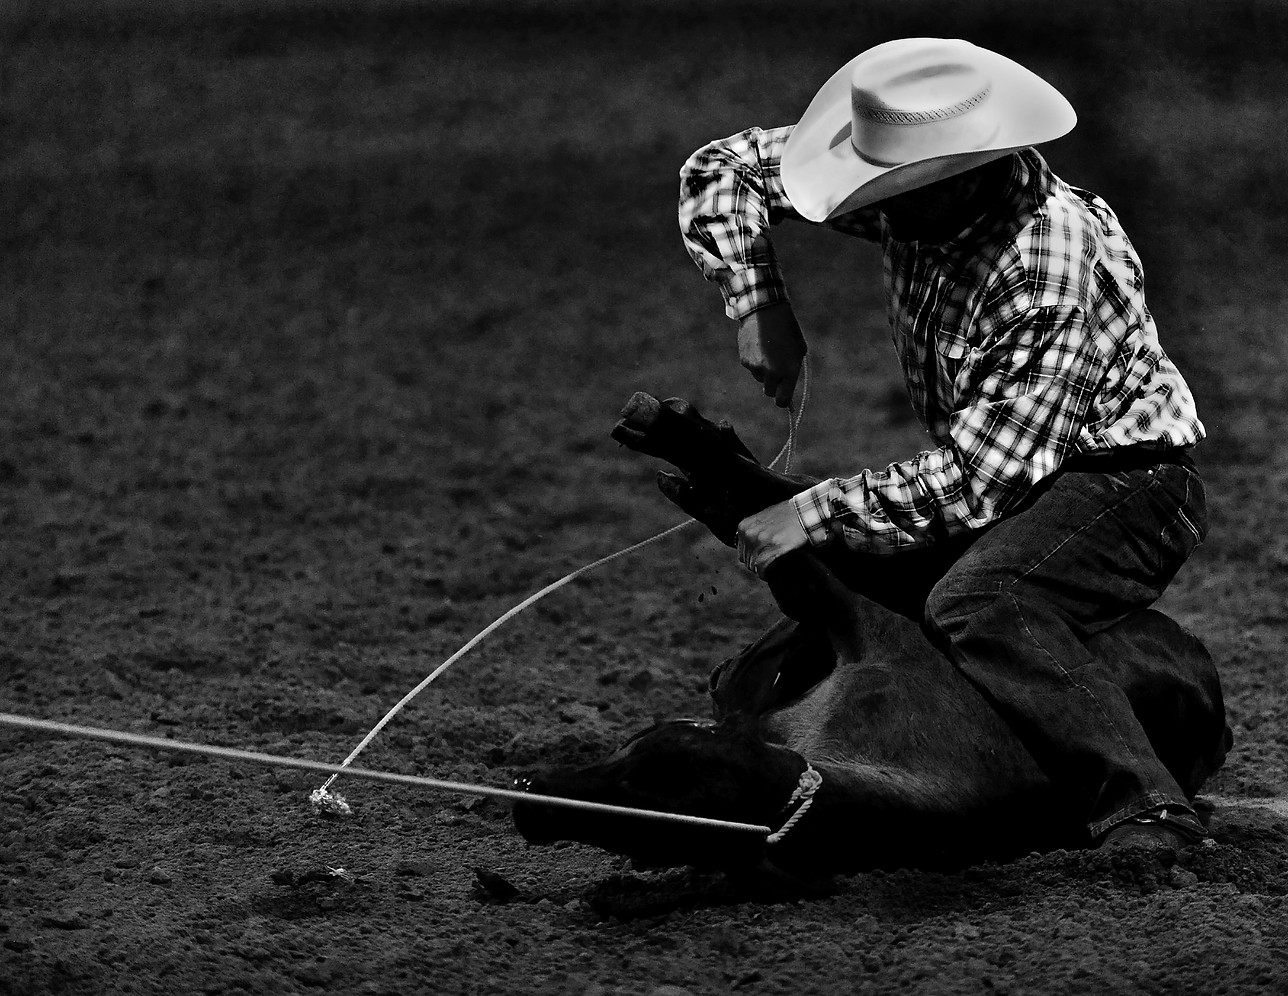 Rodeo calf Ropping